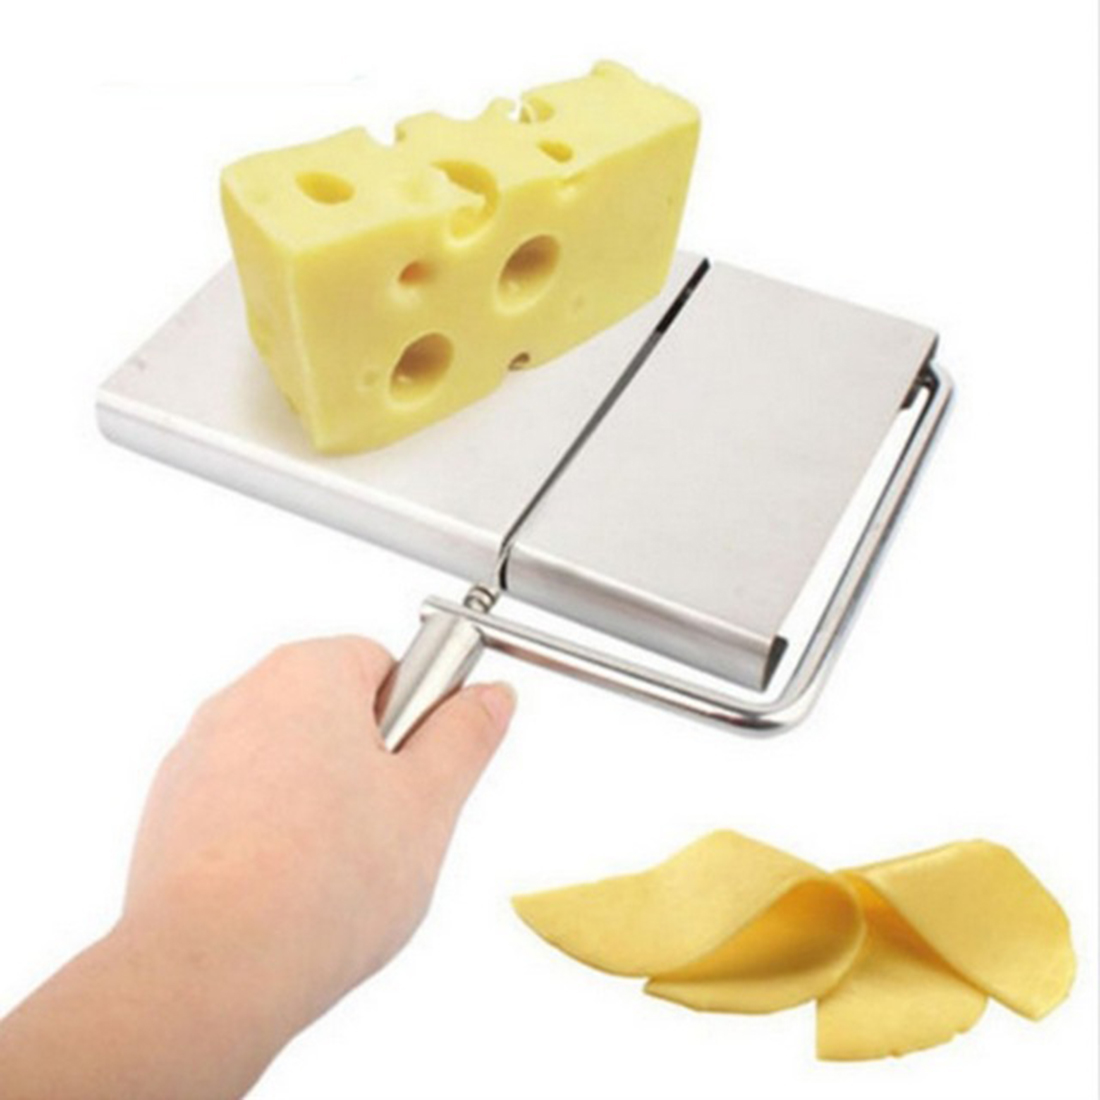 Wholesale Cheese Slicer Butter Cutting Board Stainless Steel Wire Making Dessert Blade Durable Kitchen Cooking Baking